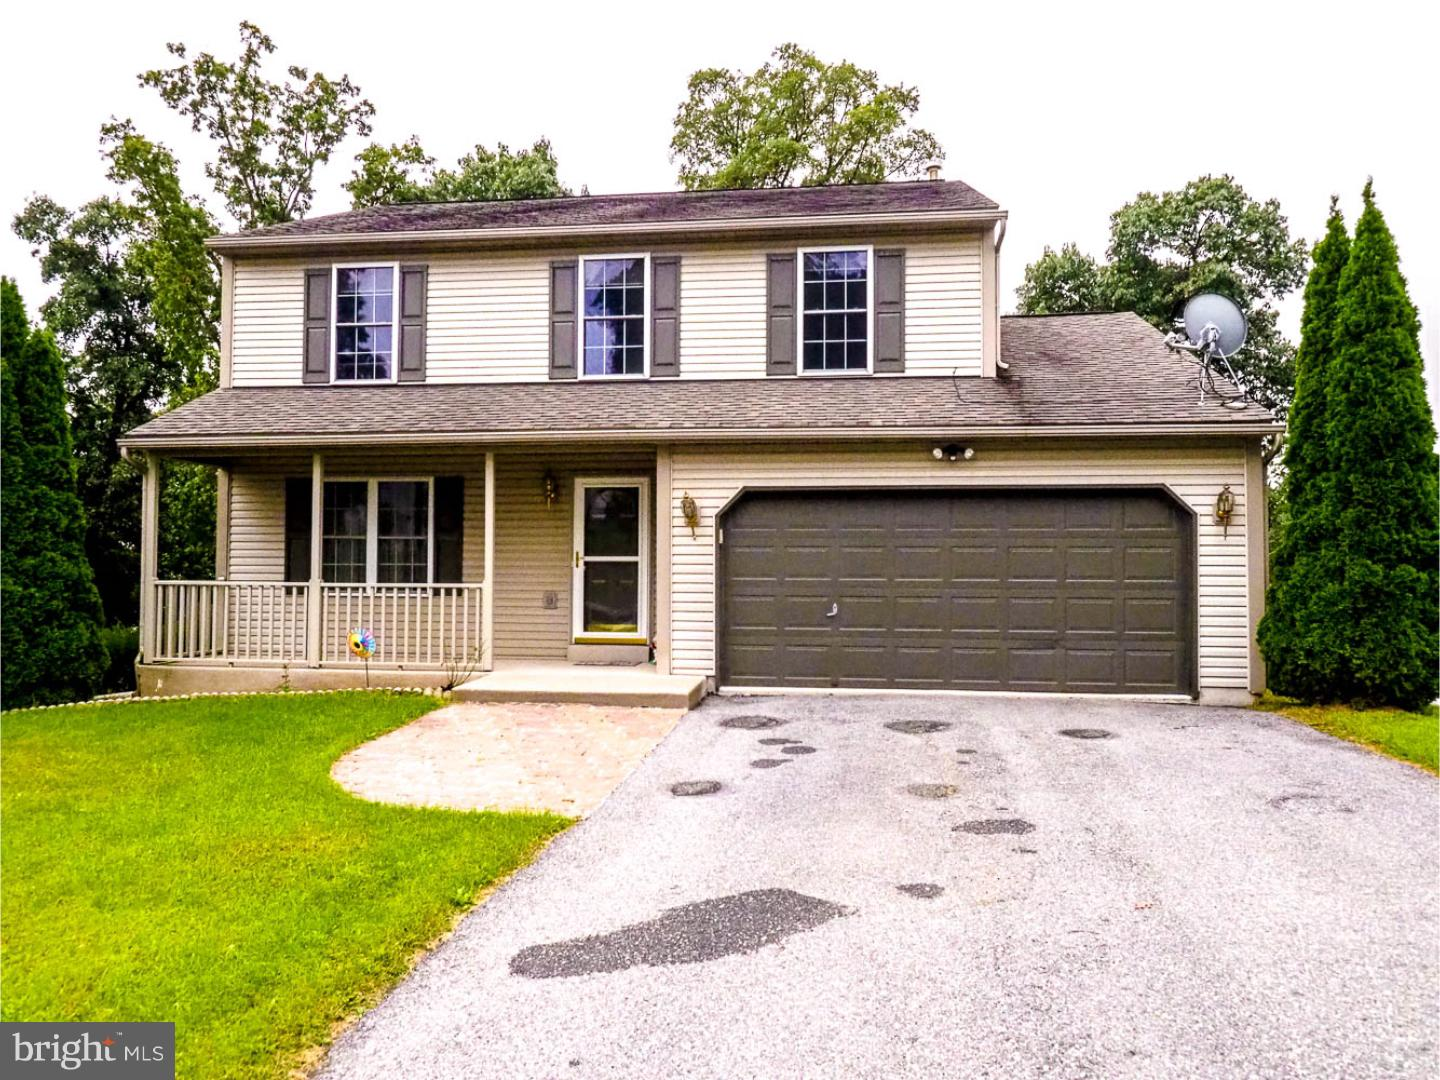 46 KELSEY DRIVE, SCHUYLKILL HAVEN, PA 17972